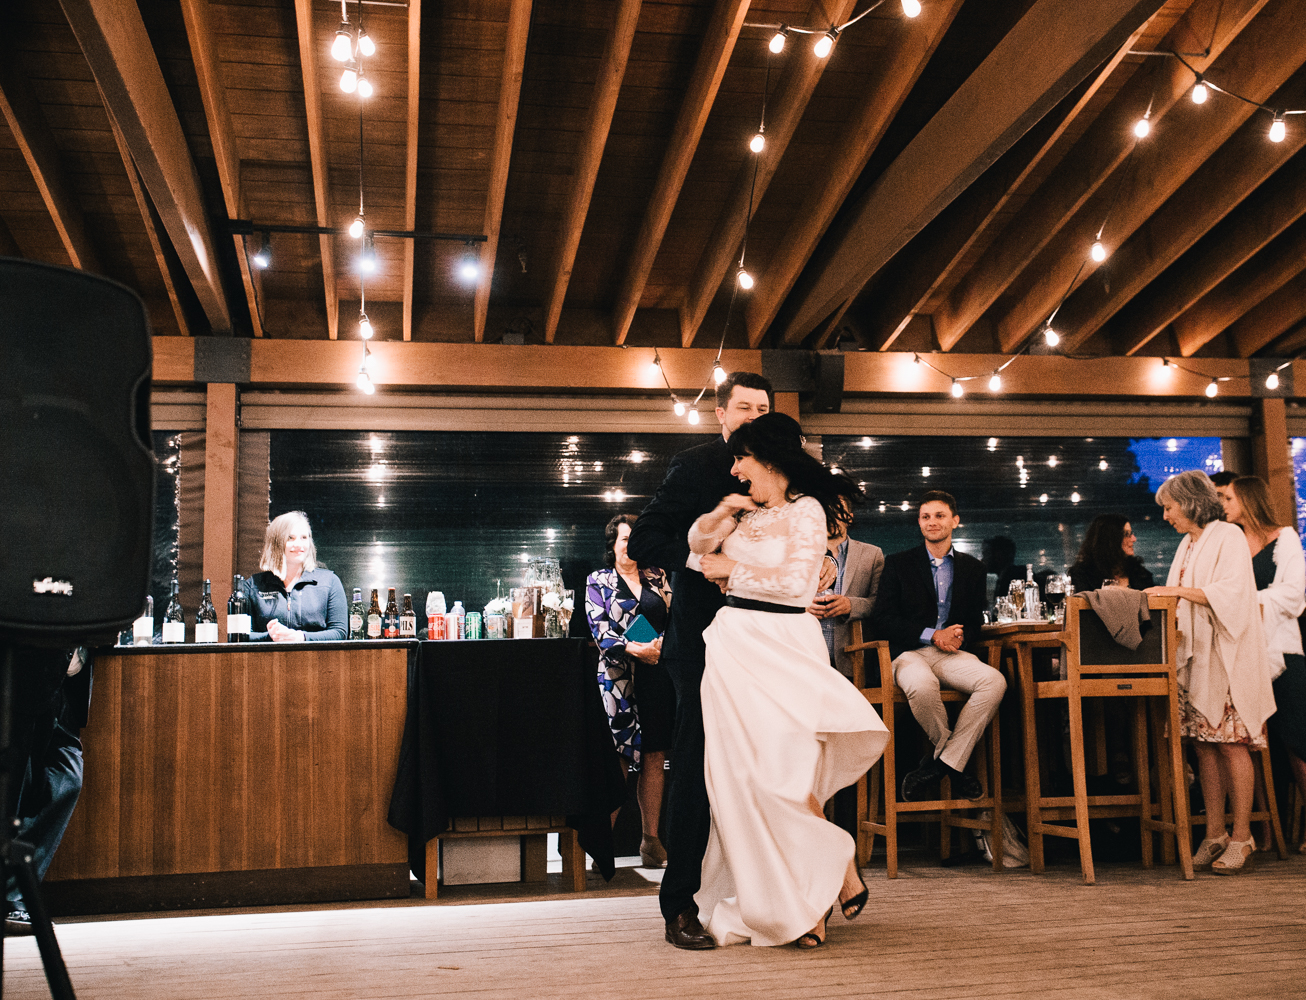 2019_05_ 182019.05.19 Lisa + Eddie South Bay Wedding Blog Photos Edited For Web 0141.jpg